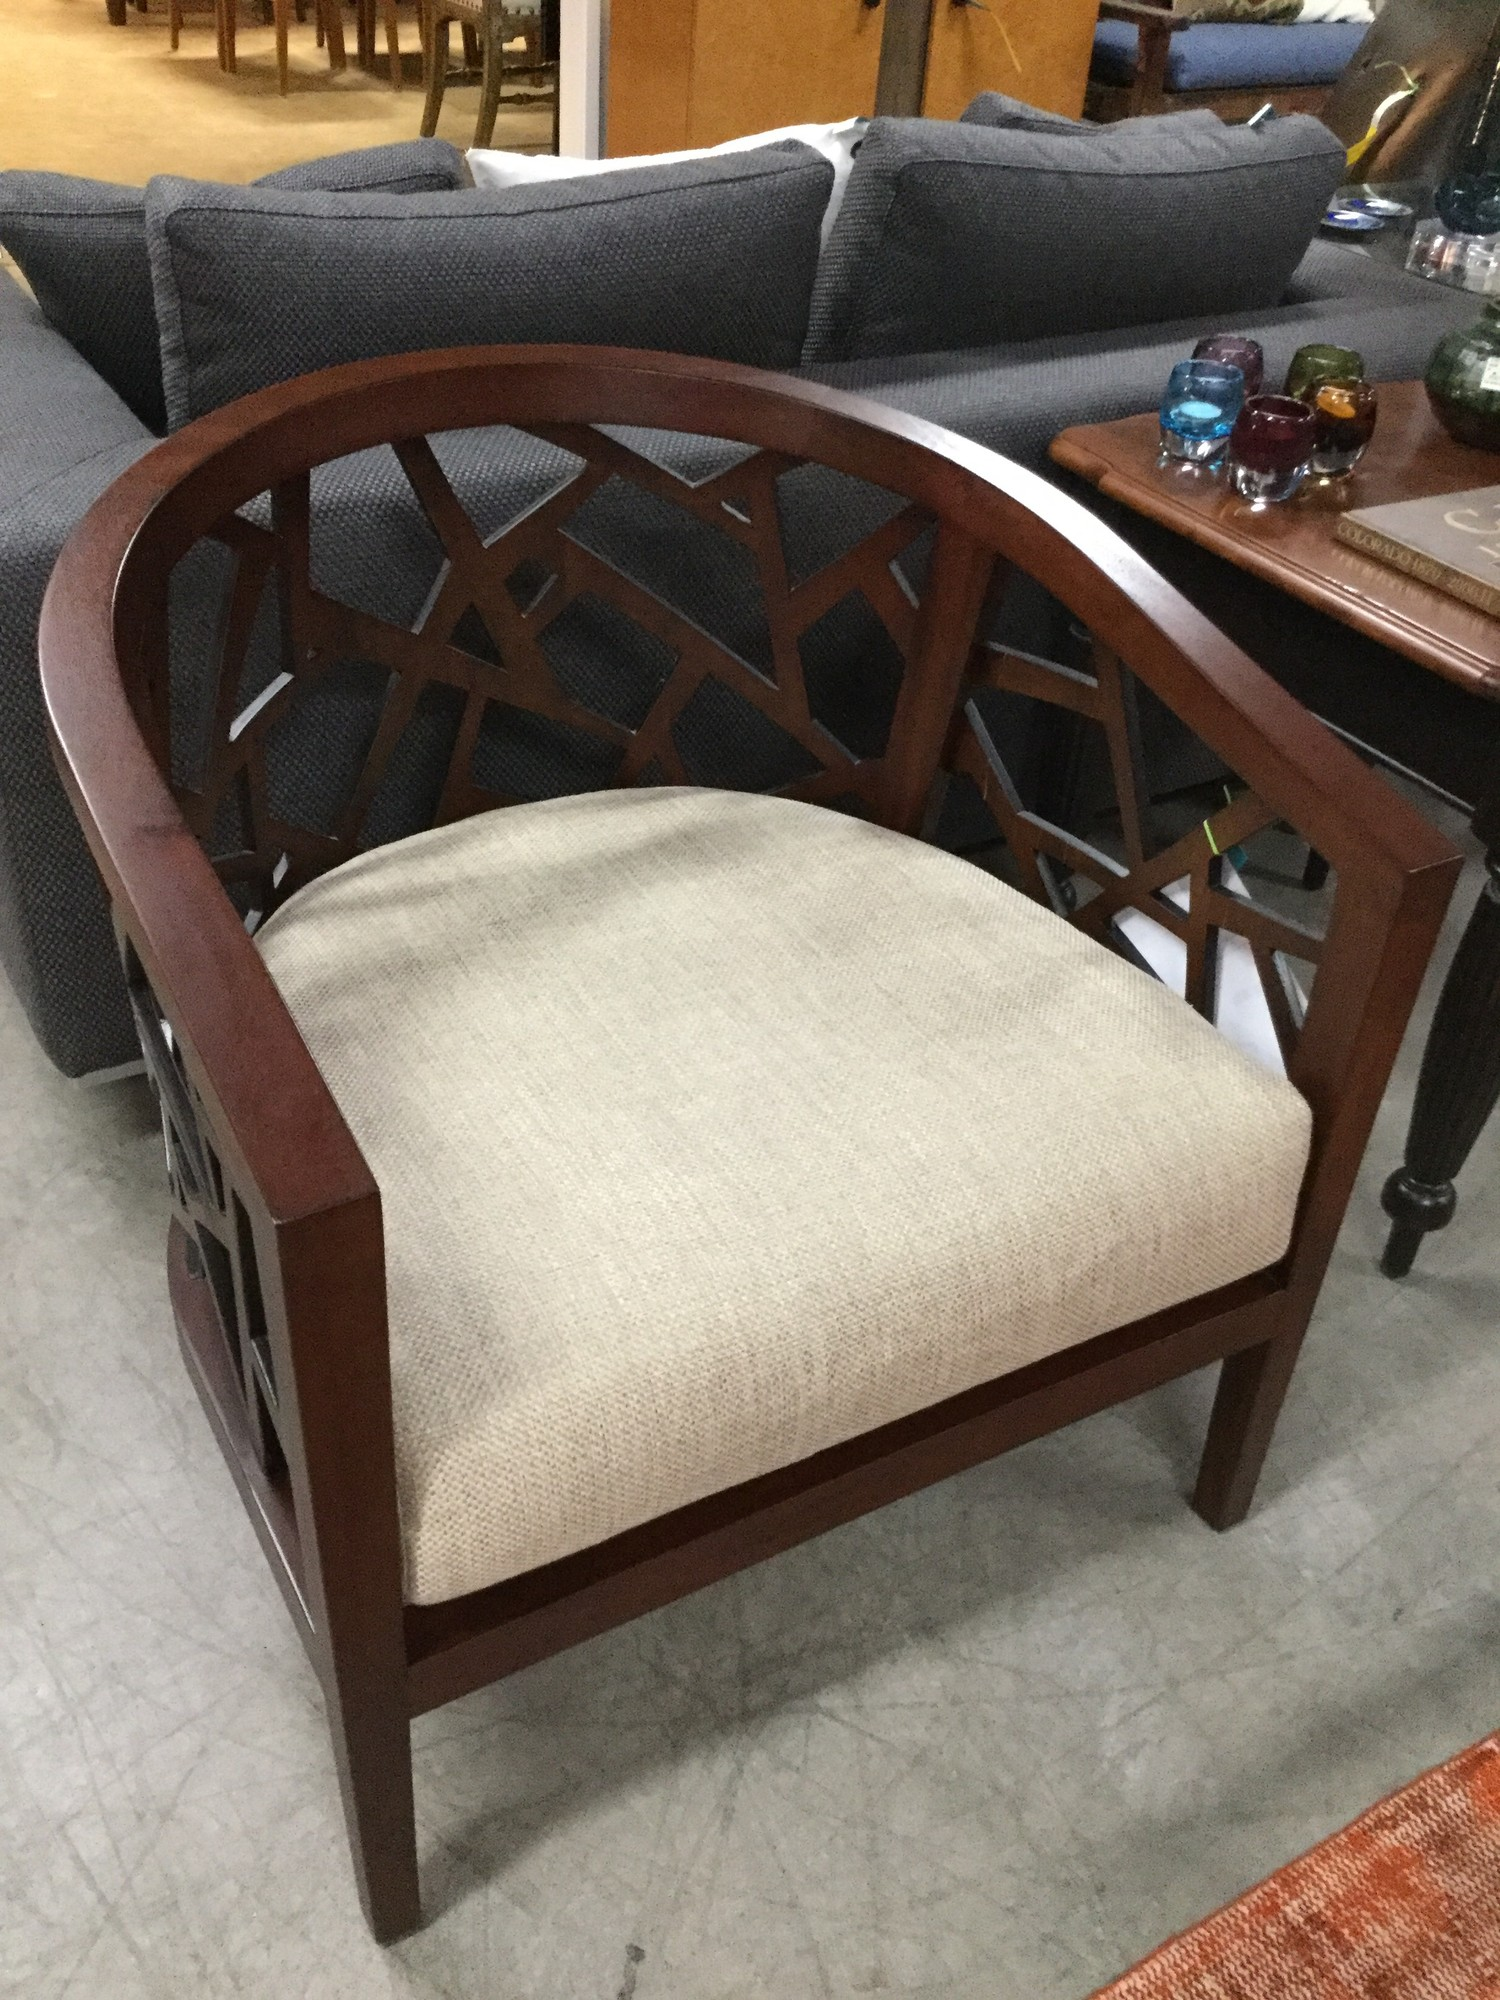 "Crate & Barrel Wood Frame Chair with Cushion, 29.5"" x 29"""